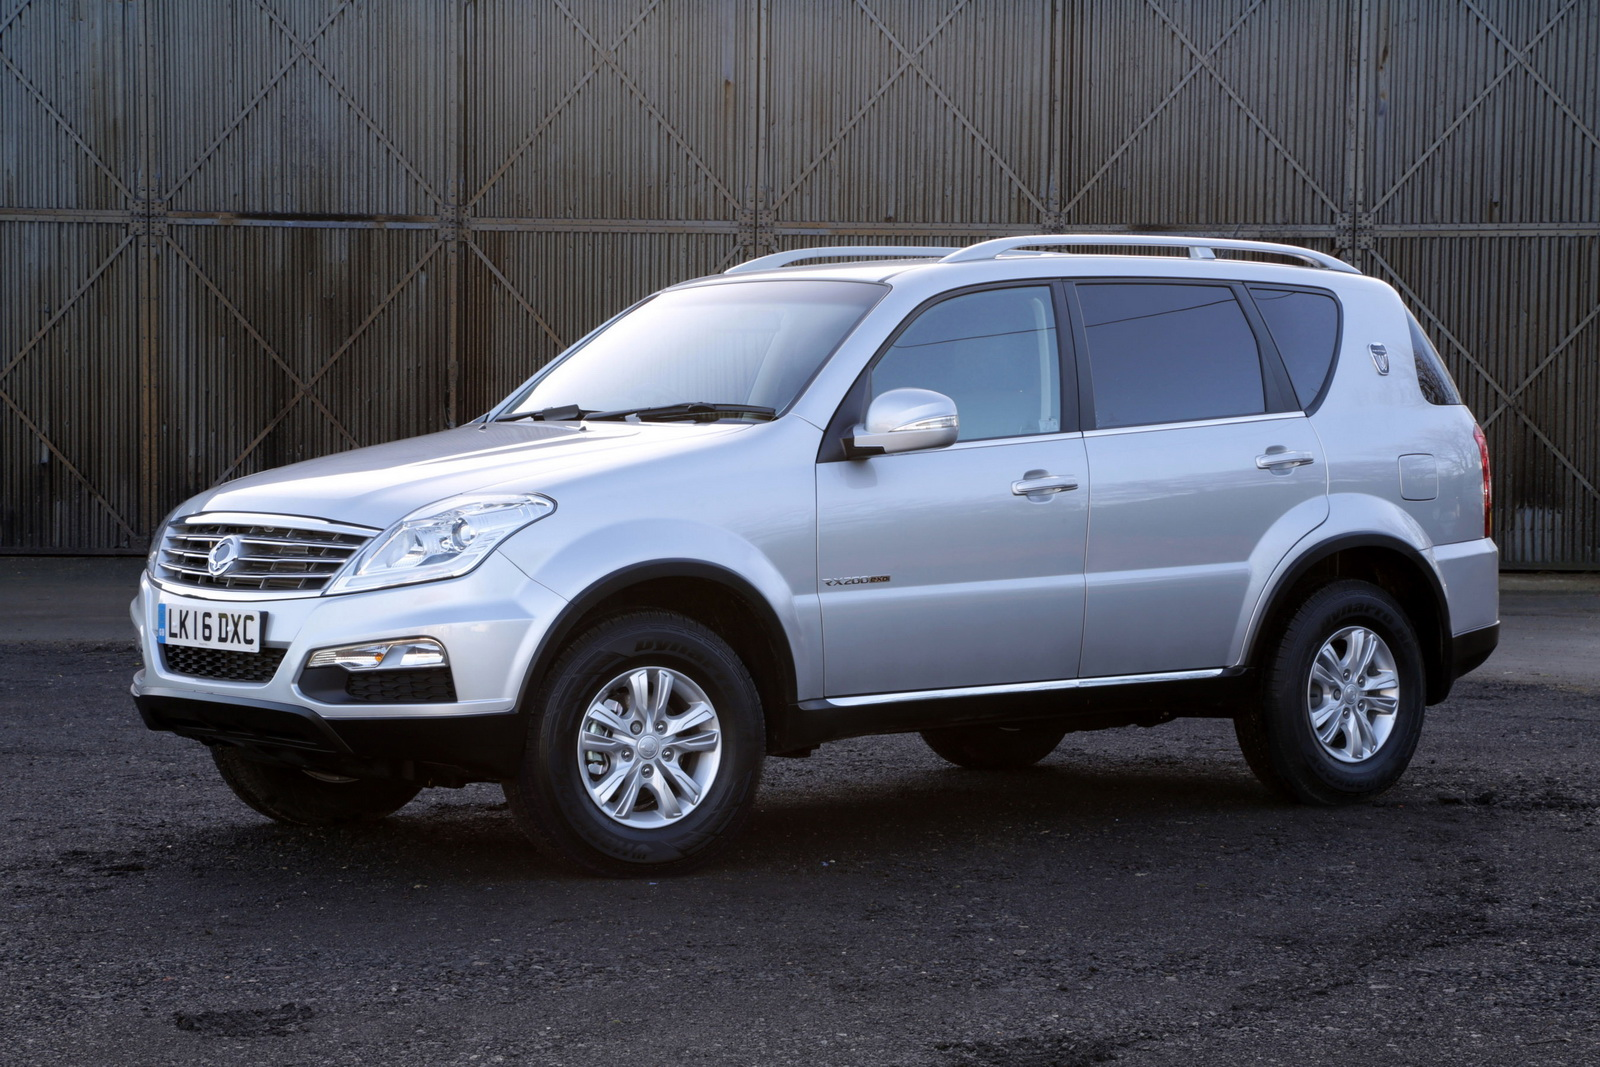 ssangyong drops new 2 2l diesel into korando and rexton lcvs. Black Bedroom Furniture Sets. Home Design Ideas